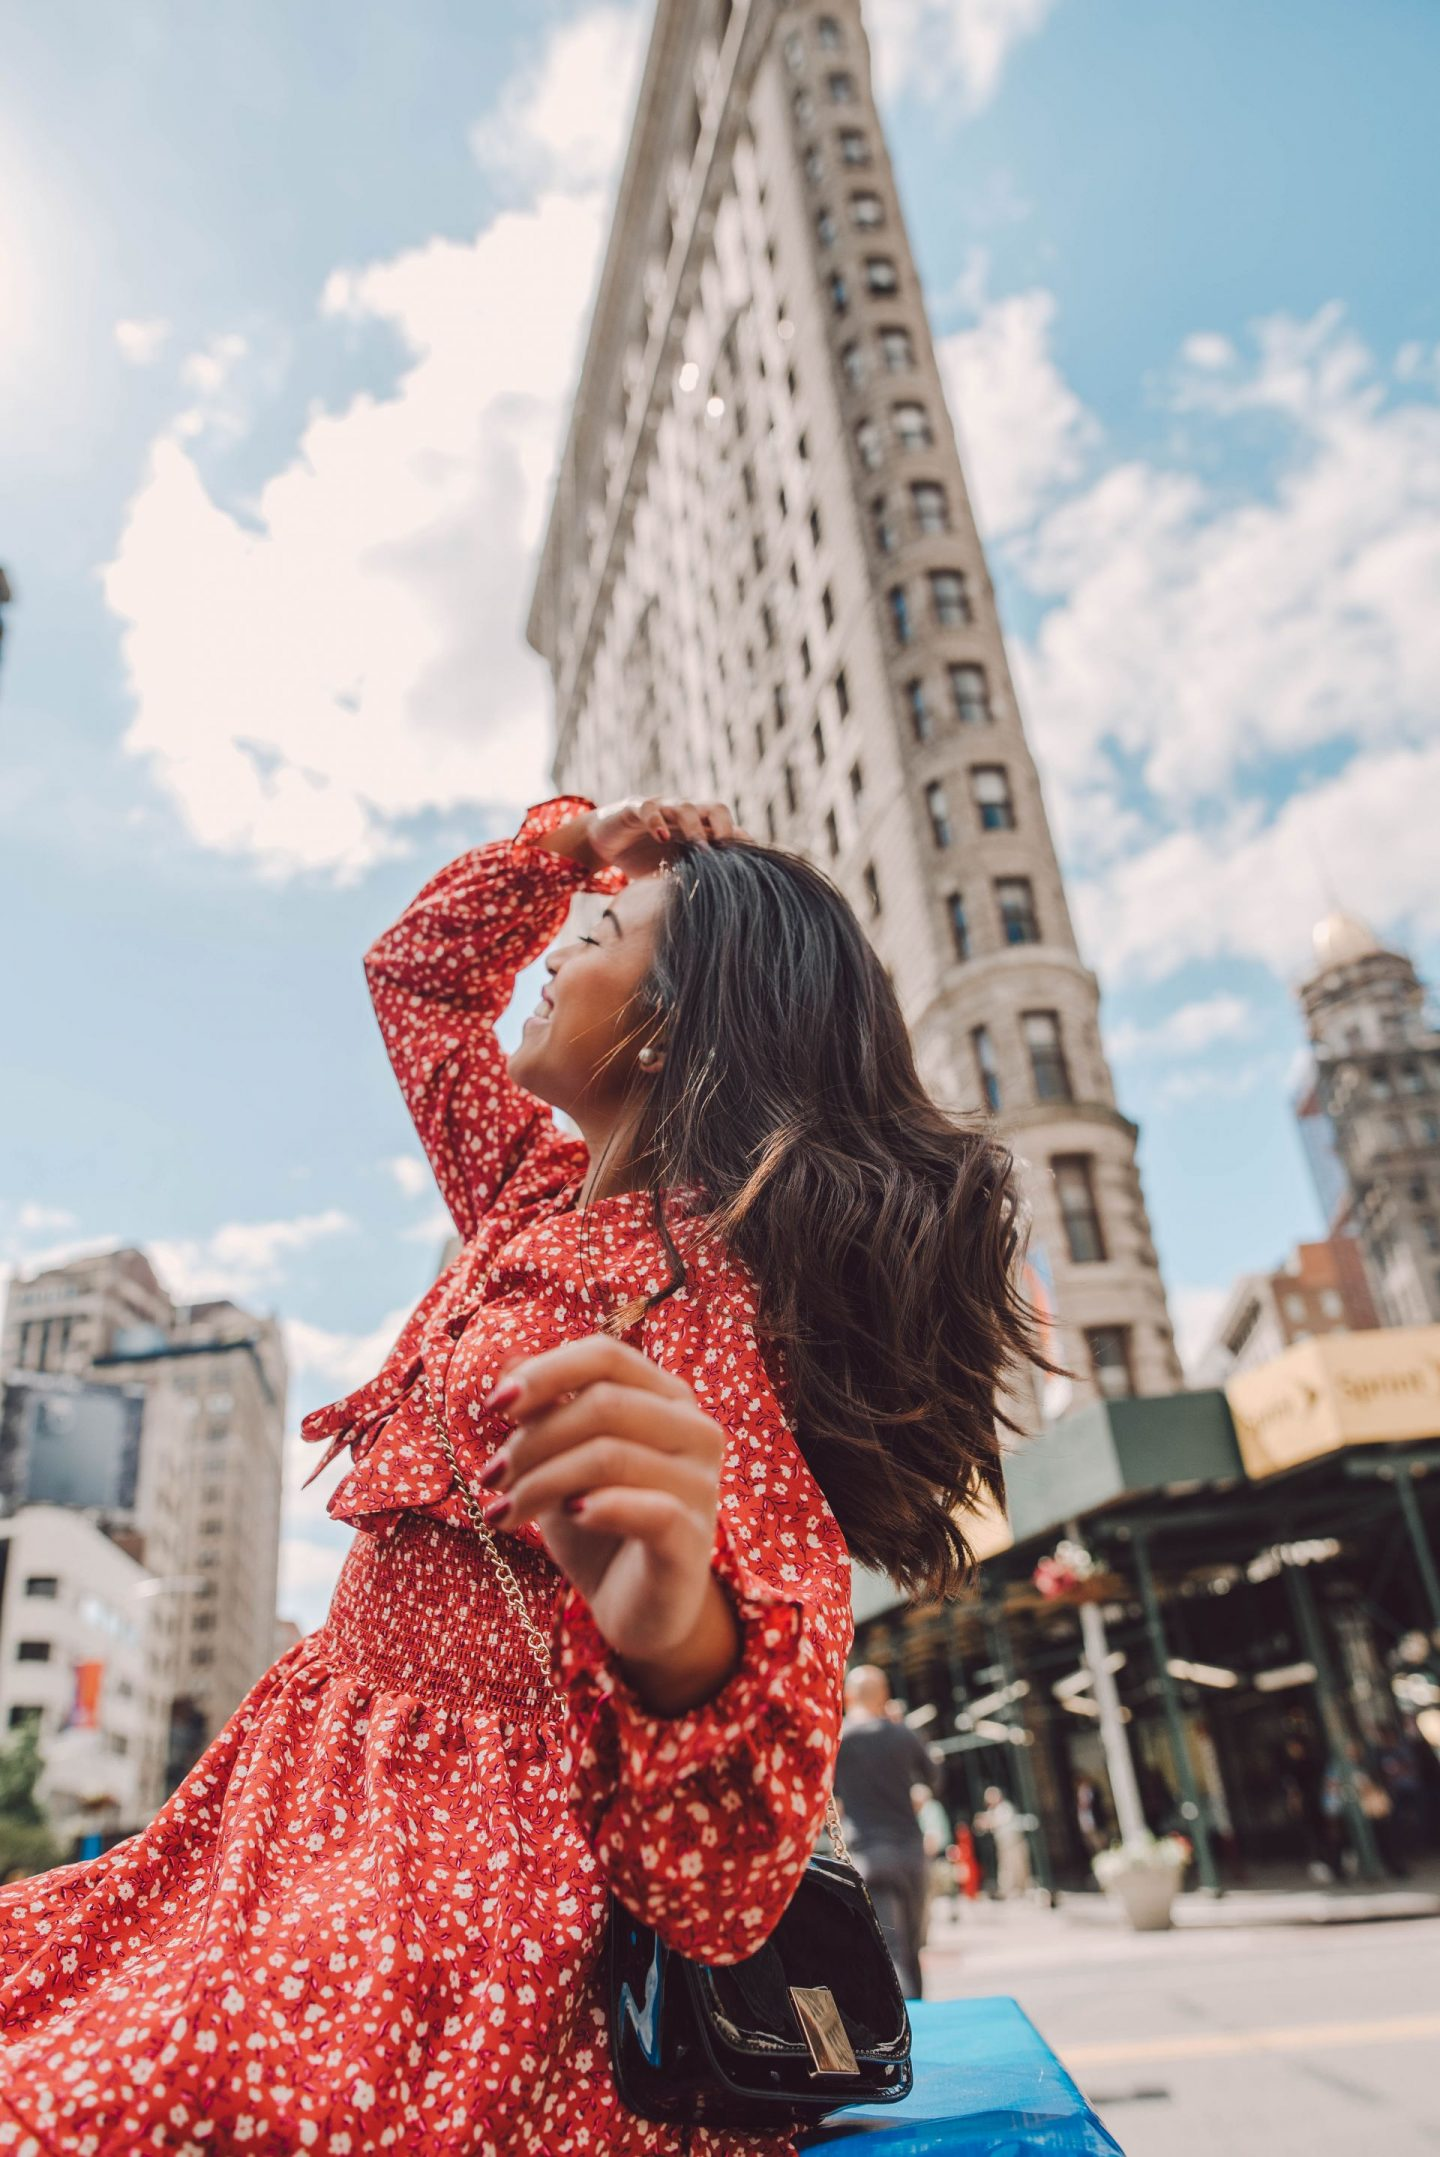 How to get a great photo at the flatiron building - Emmas Edition